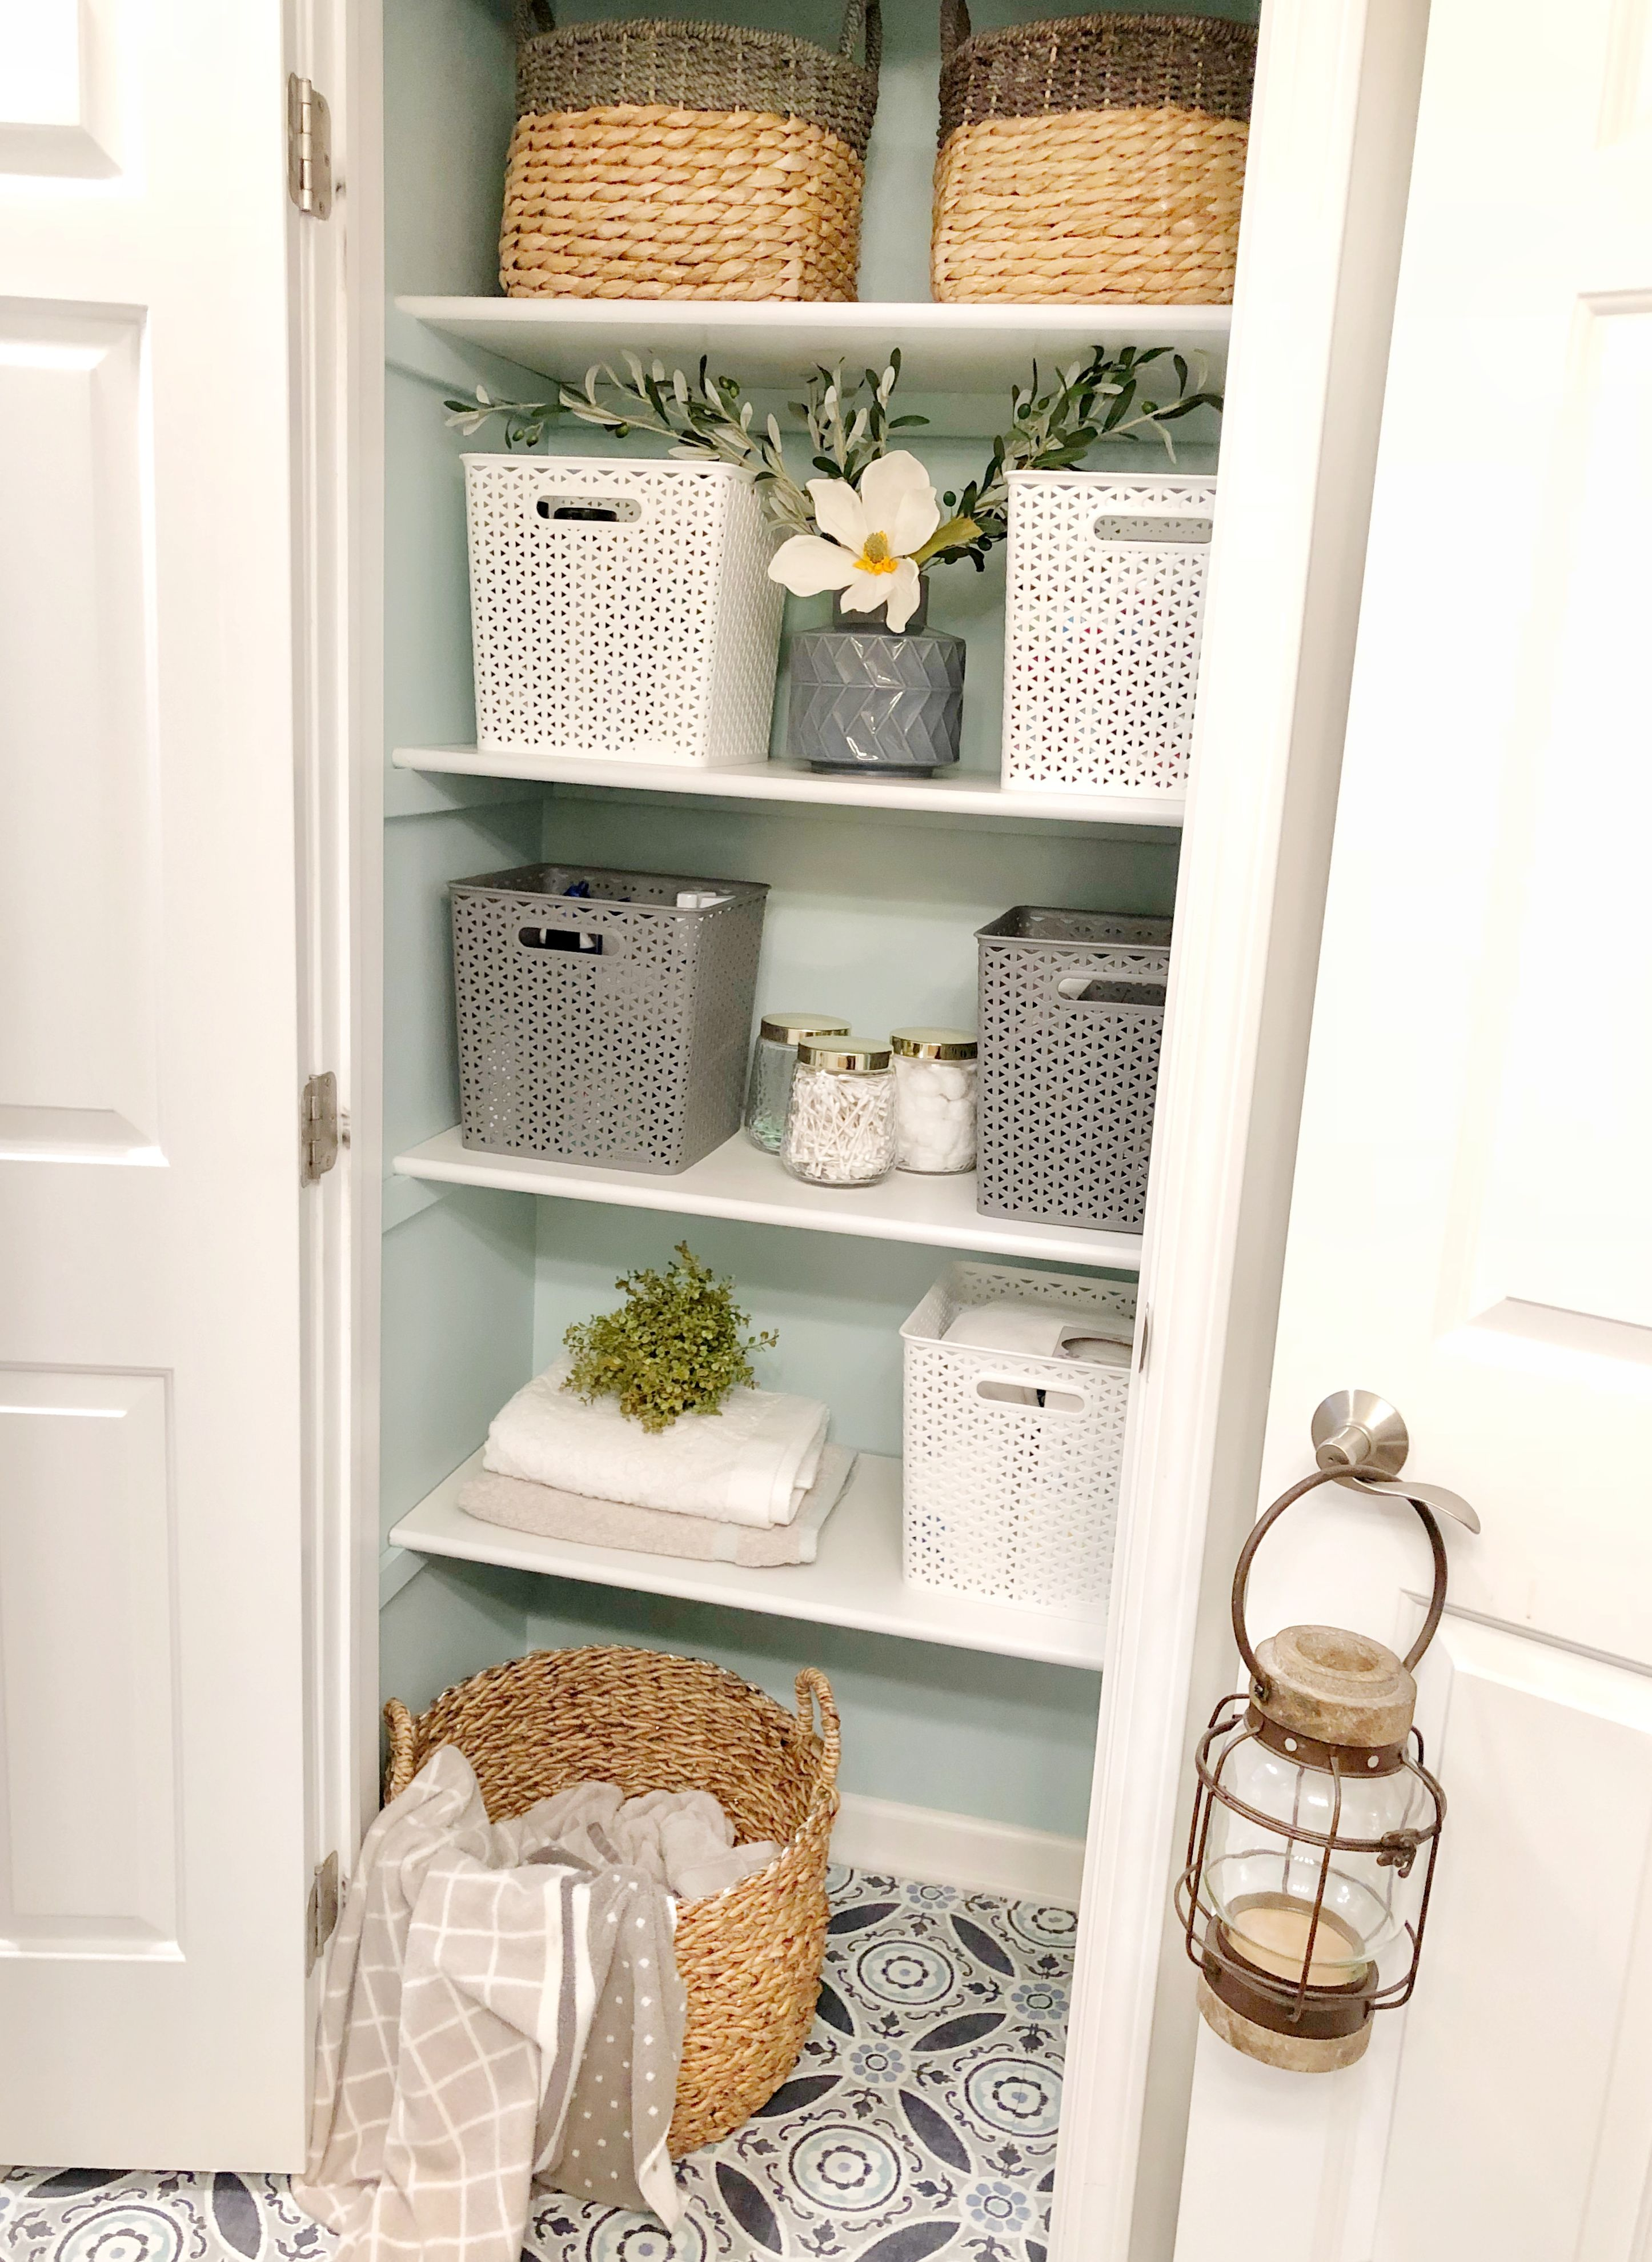 Linen Closet Makeover & Organization Tips